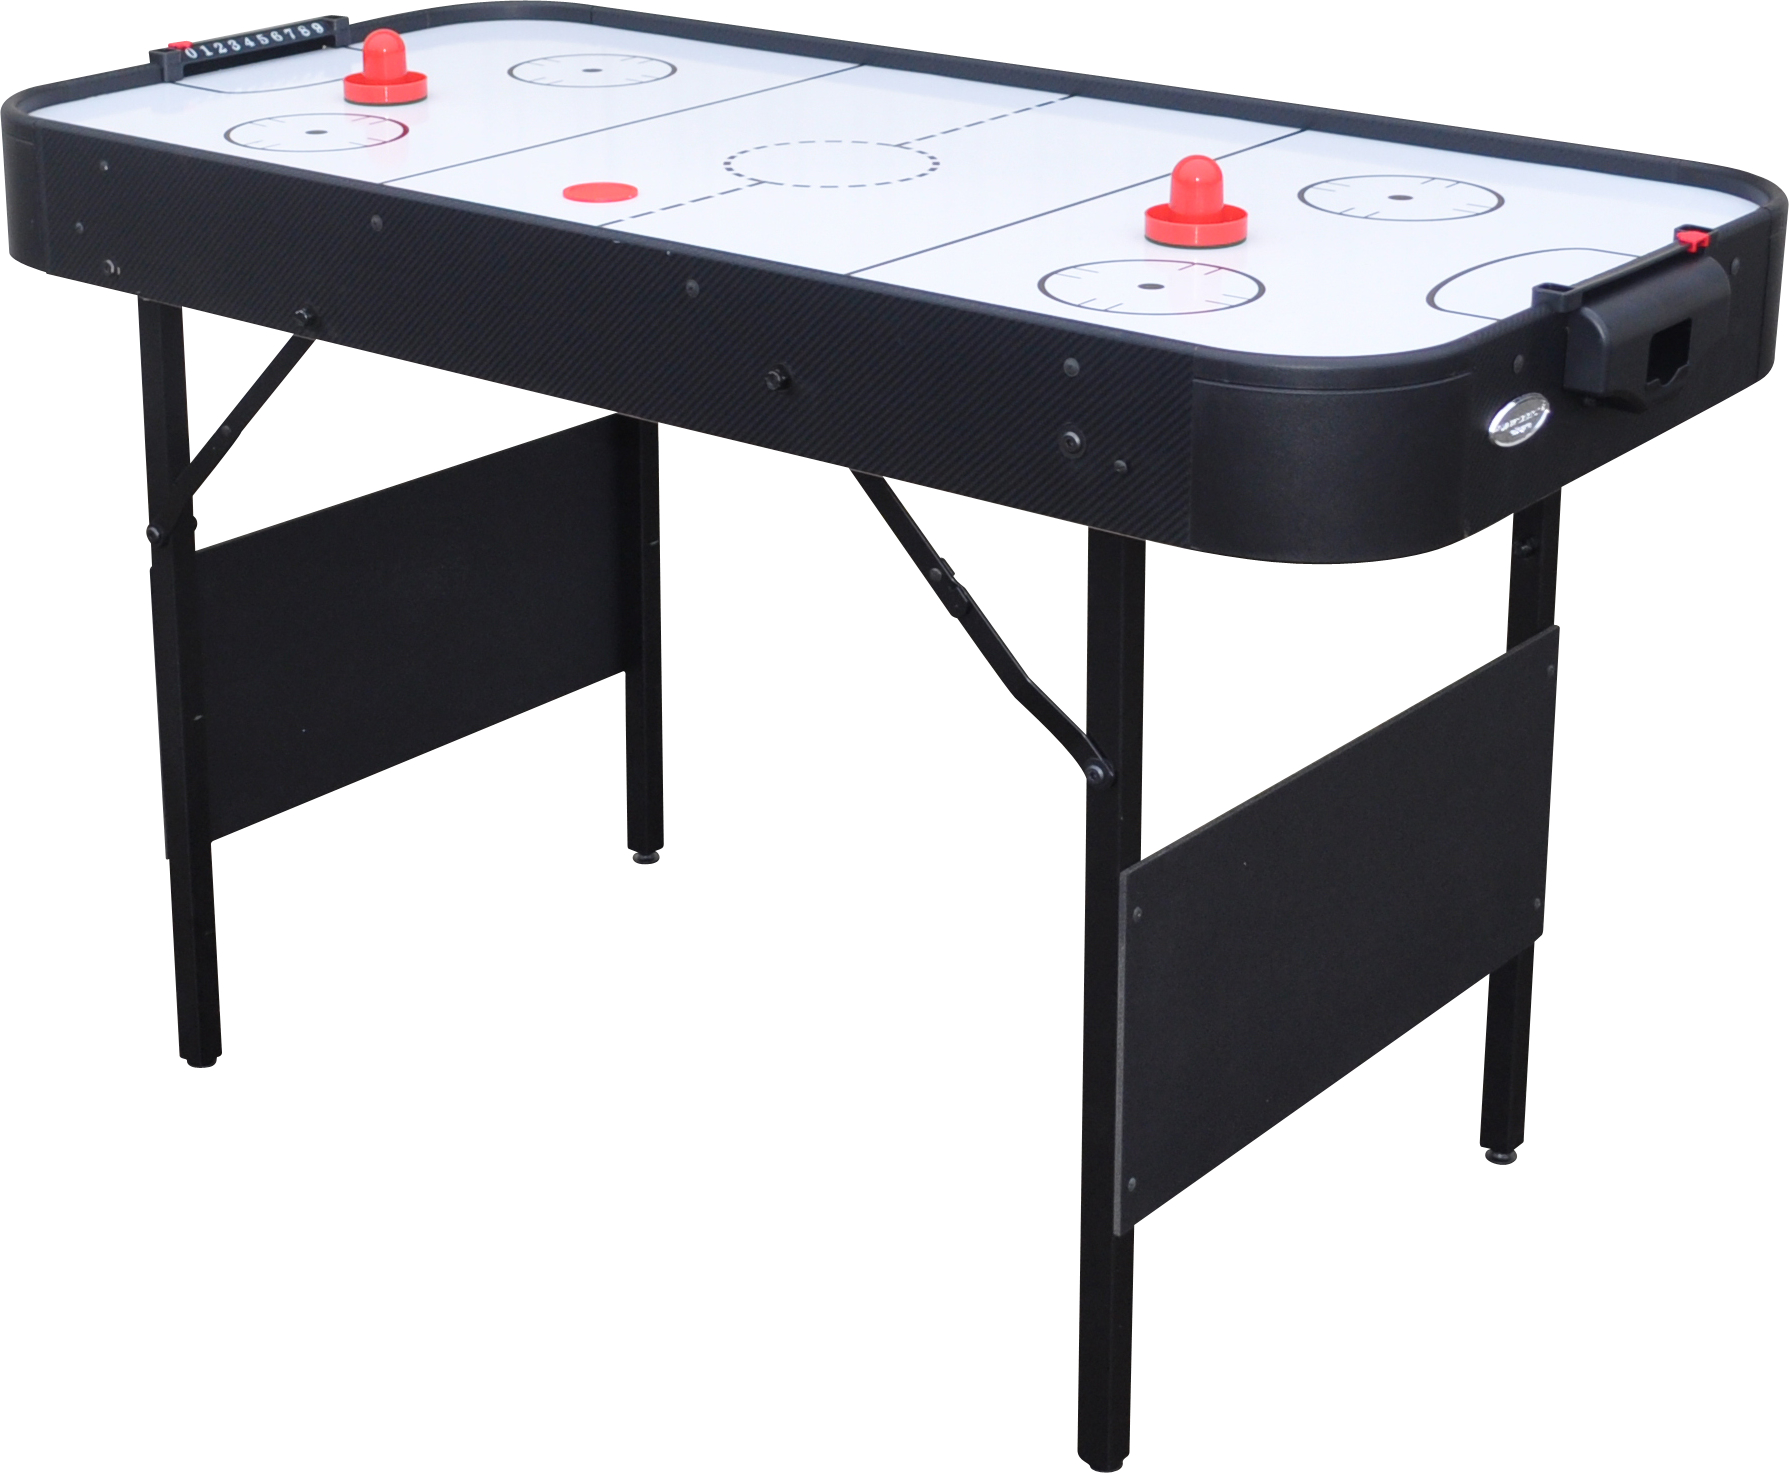 Gamesson Airhockey Shark White